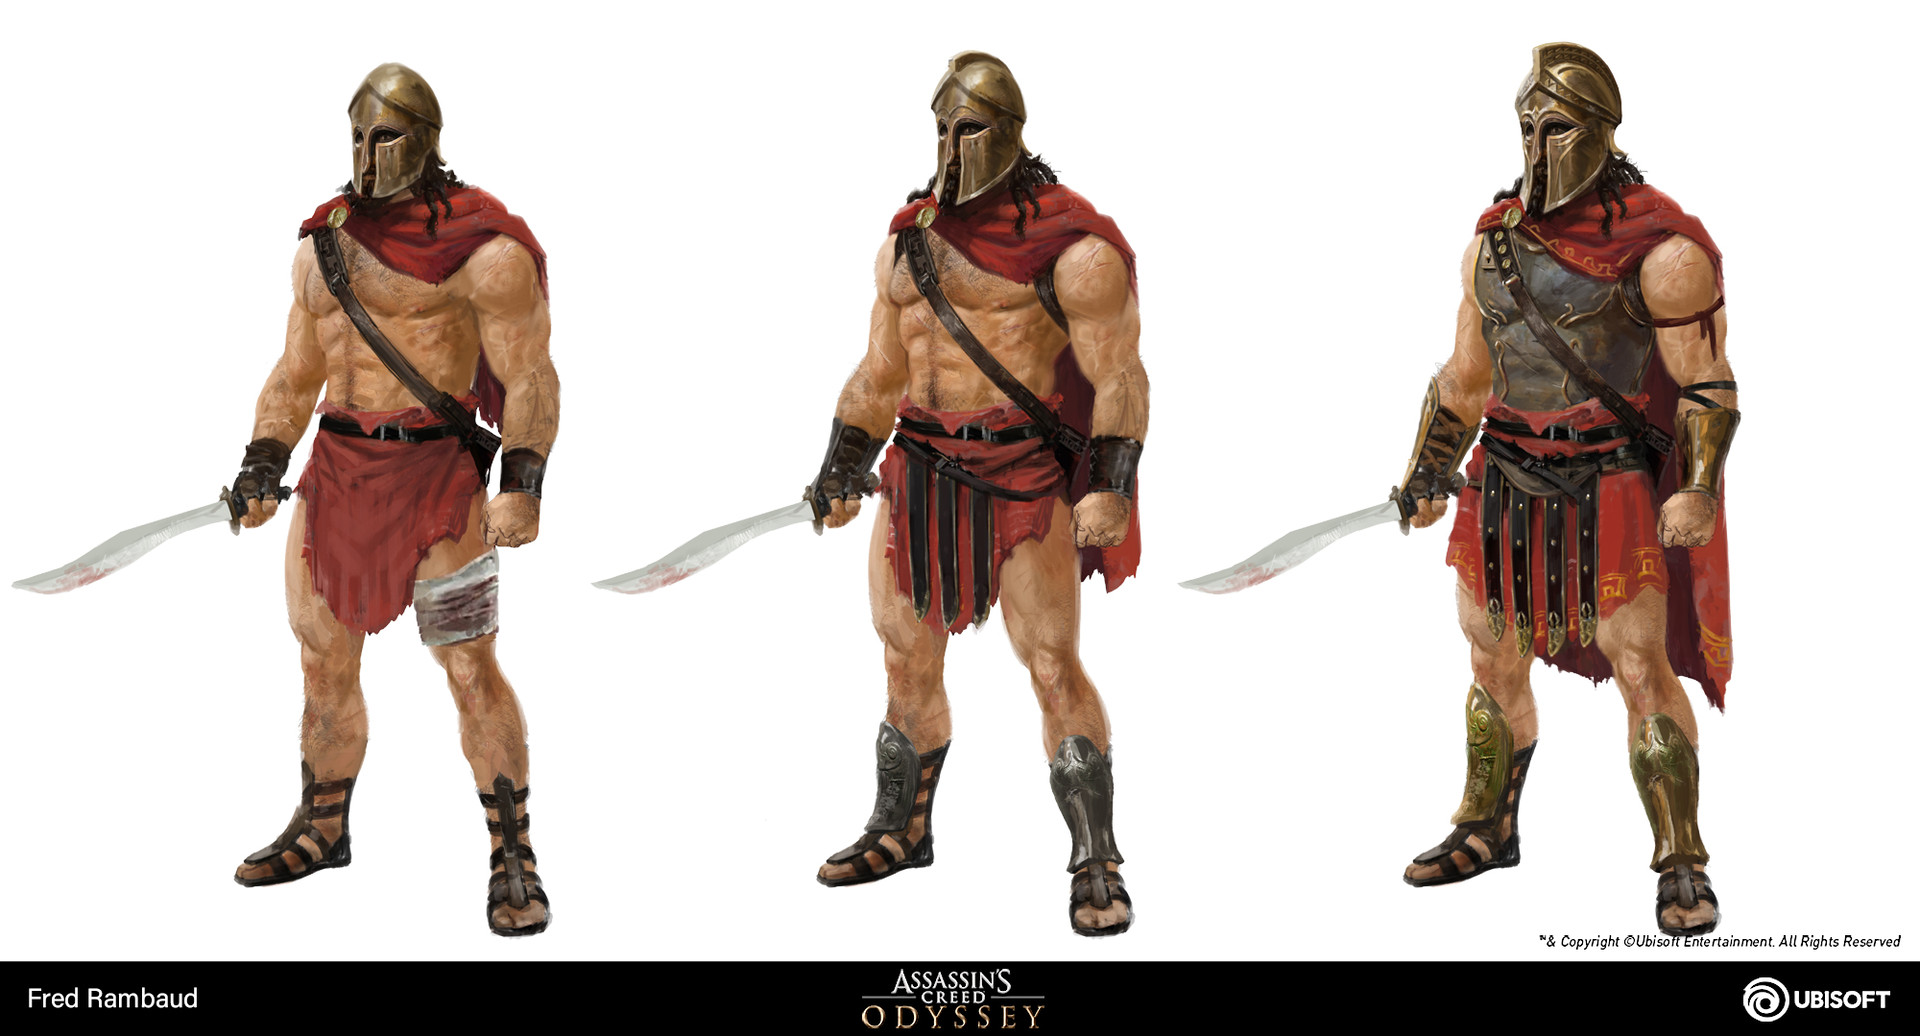 Why Do Odyssey Spartans Look More Like Romans Rather Than Actual